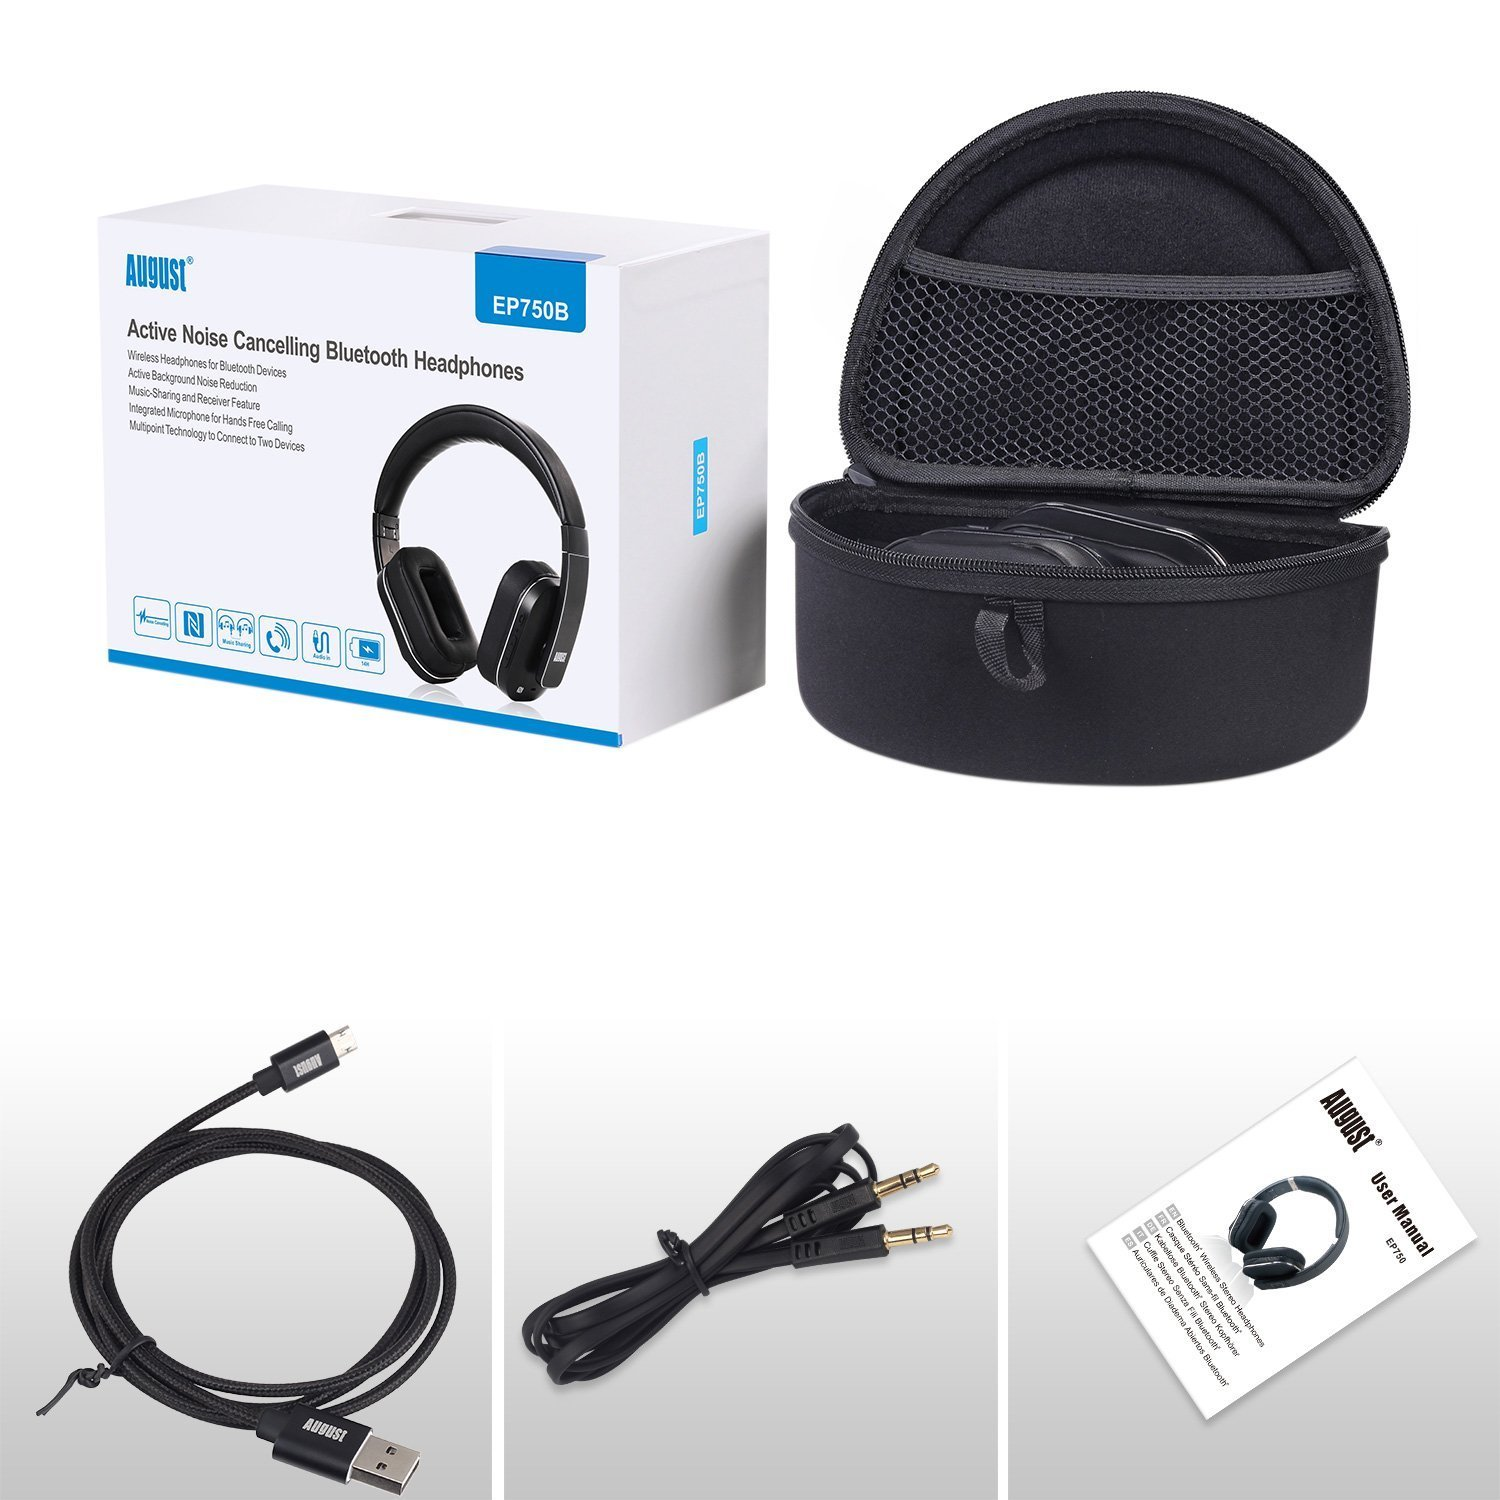 August EP750 Active Noise Cancelling Wireless Bluetooth Over-ear Stereo Headphones with Microphone and Volume Control - aPTX/Black - Reduce Air Travel Engine Noise by August